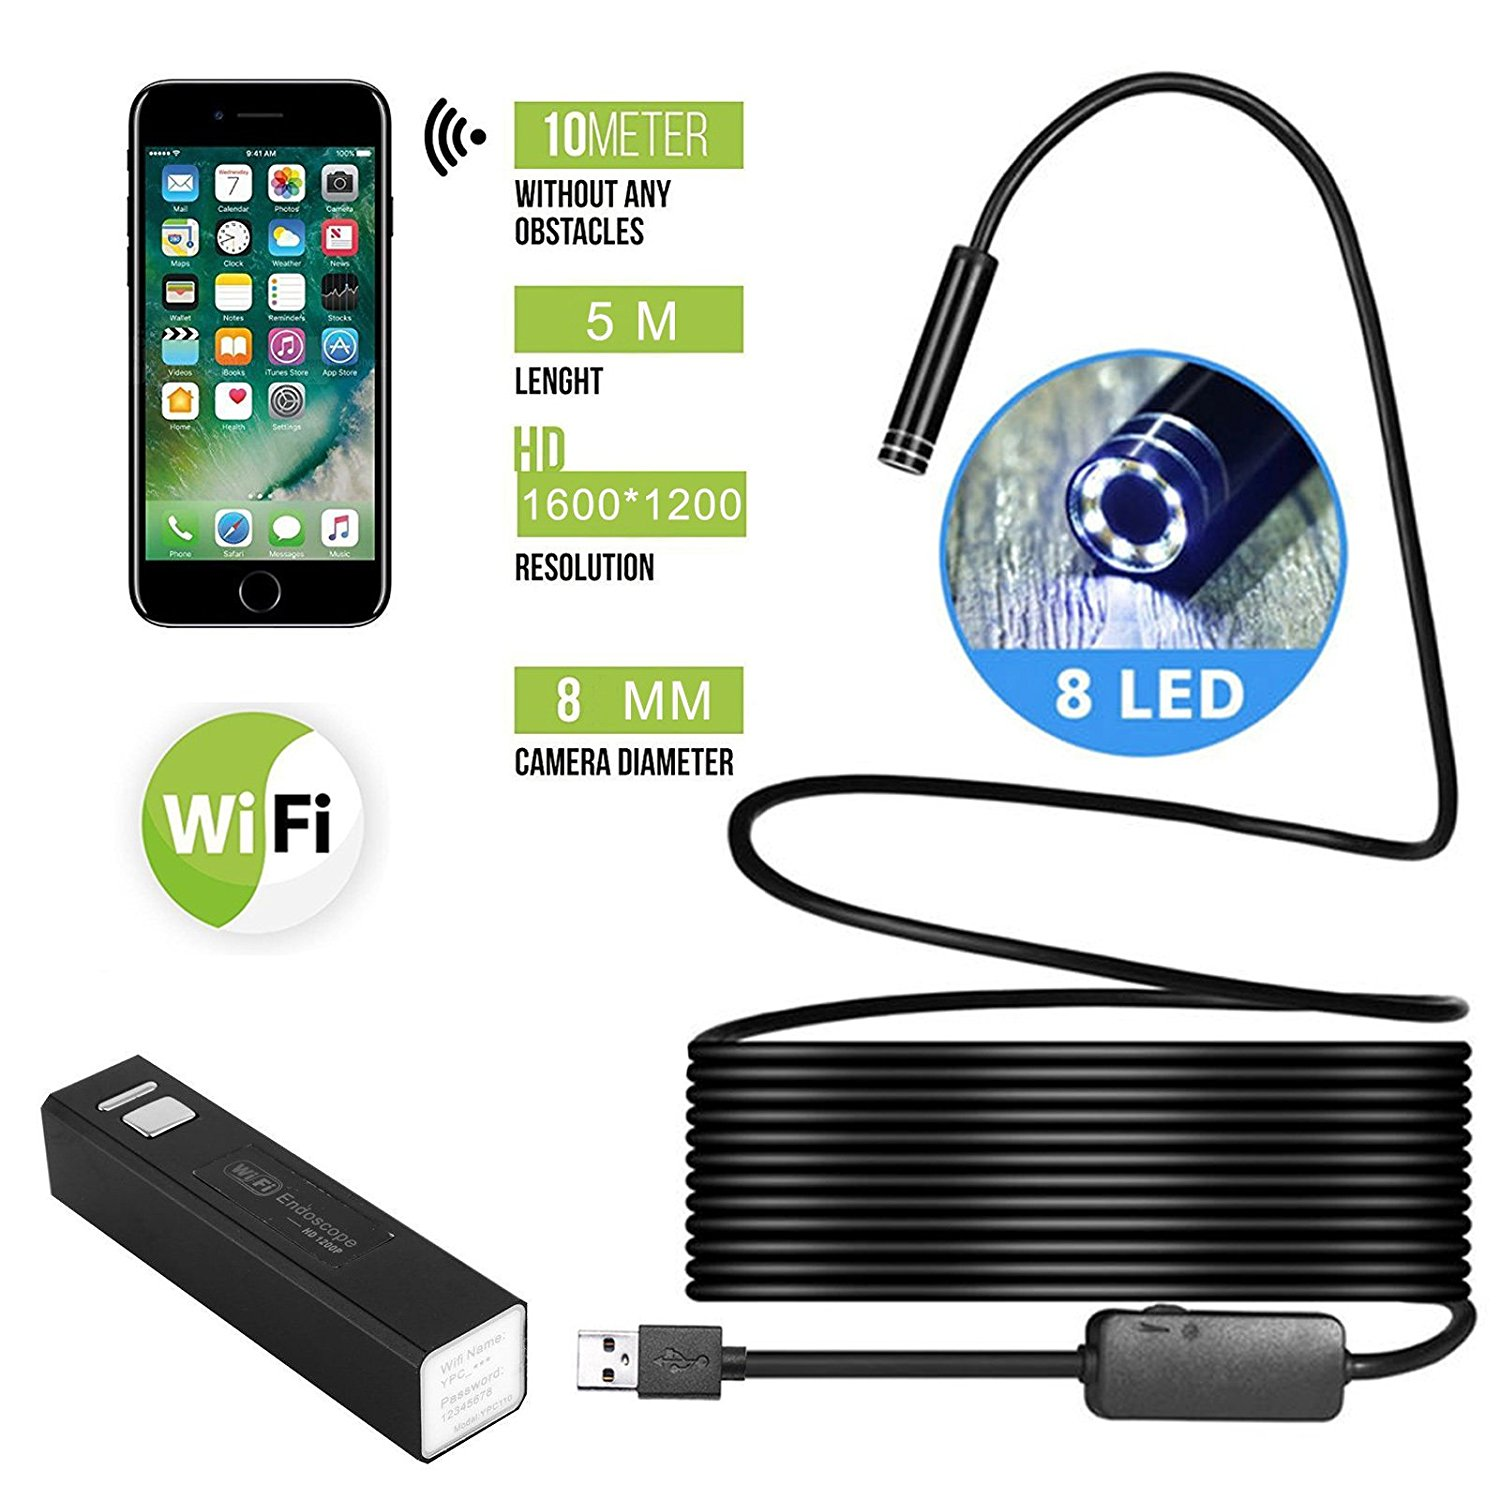 5M 1200P Wifi Endoscope Camera, EEEKit Wireless Borescope Inspection Camera HD 8 LED Adjustable Lights 8mm Waterproof Snake Camera for Android IOS iPhone Smartphones iPad Tablets Laptops